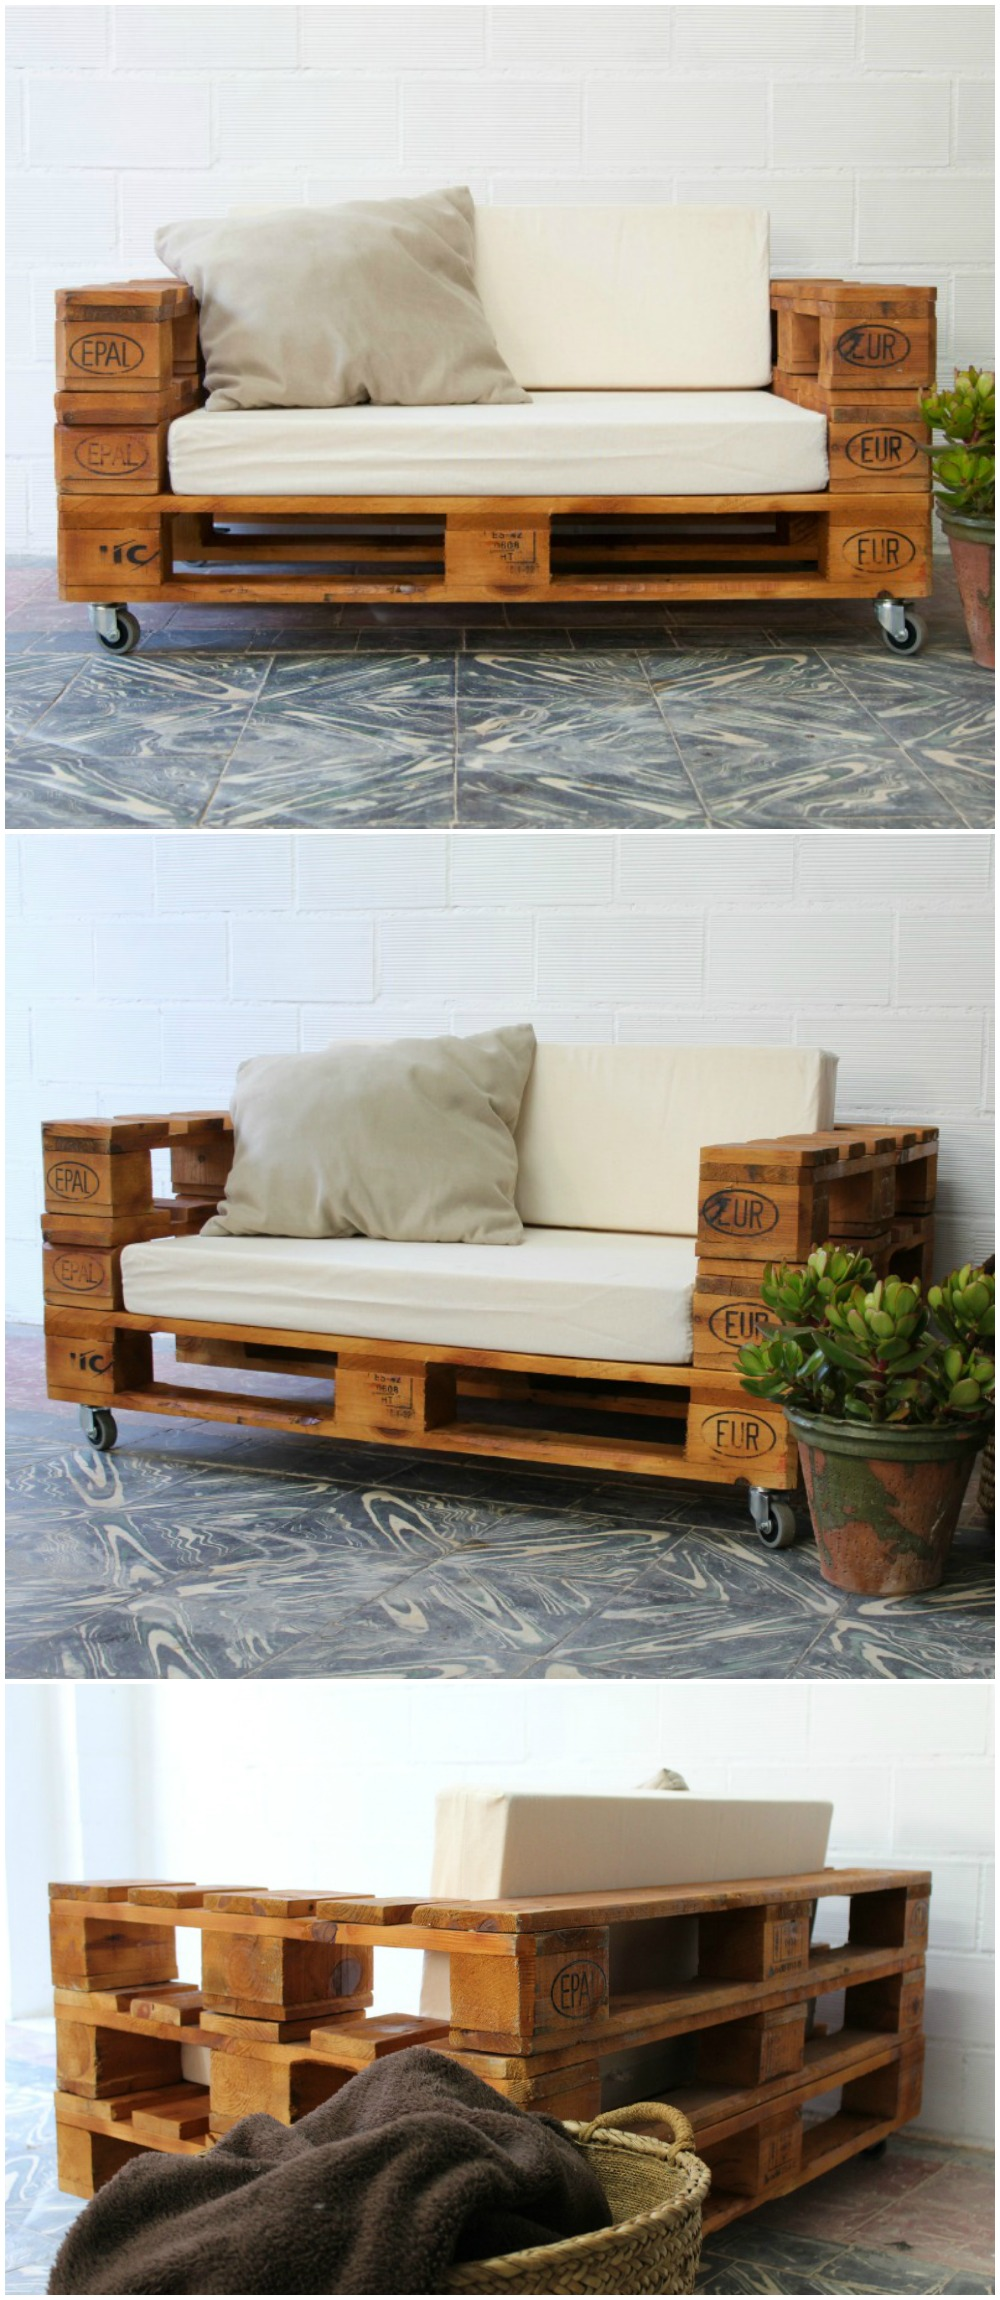 Sof de palets con ruedas sof hecho con palets sof for Muebles jardin con palets